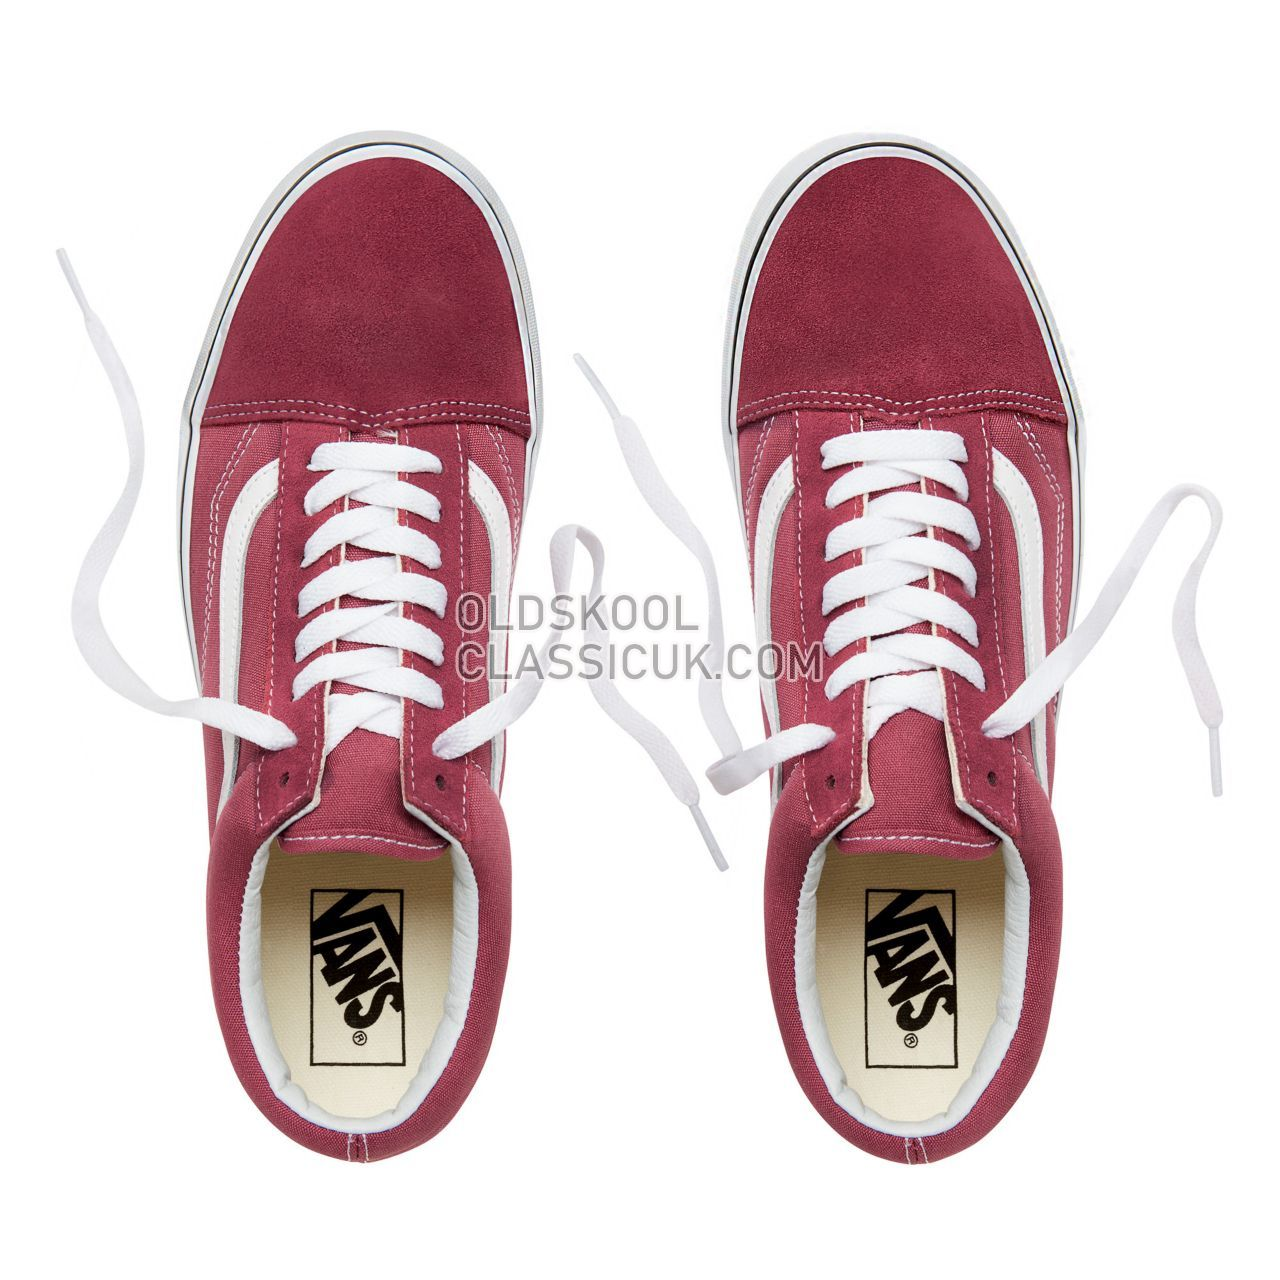 Vans Color Theory Old Skool Sneakers (Unisex) Mens Womens Unisex Dry Rose/True White VA38G1U64 Shoes